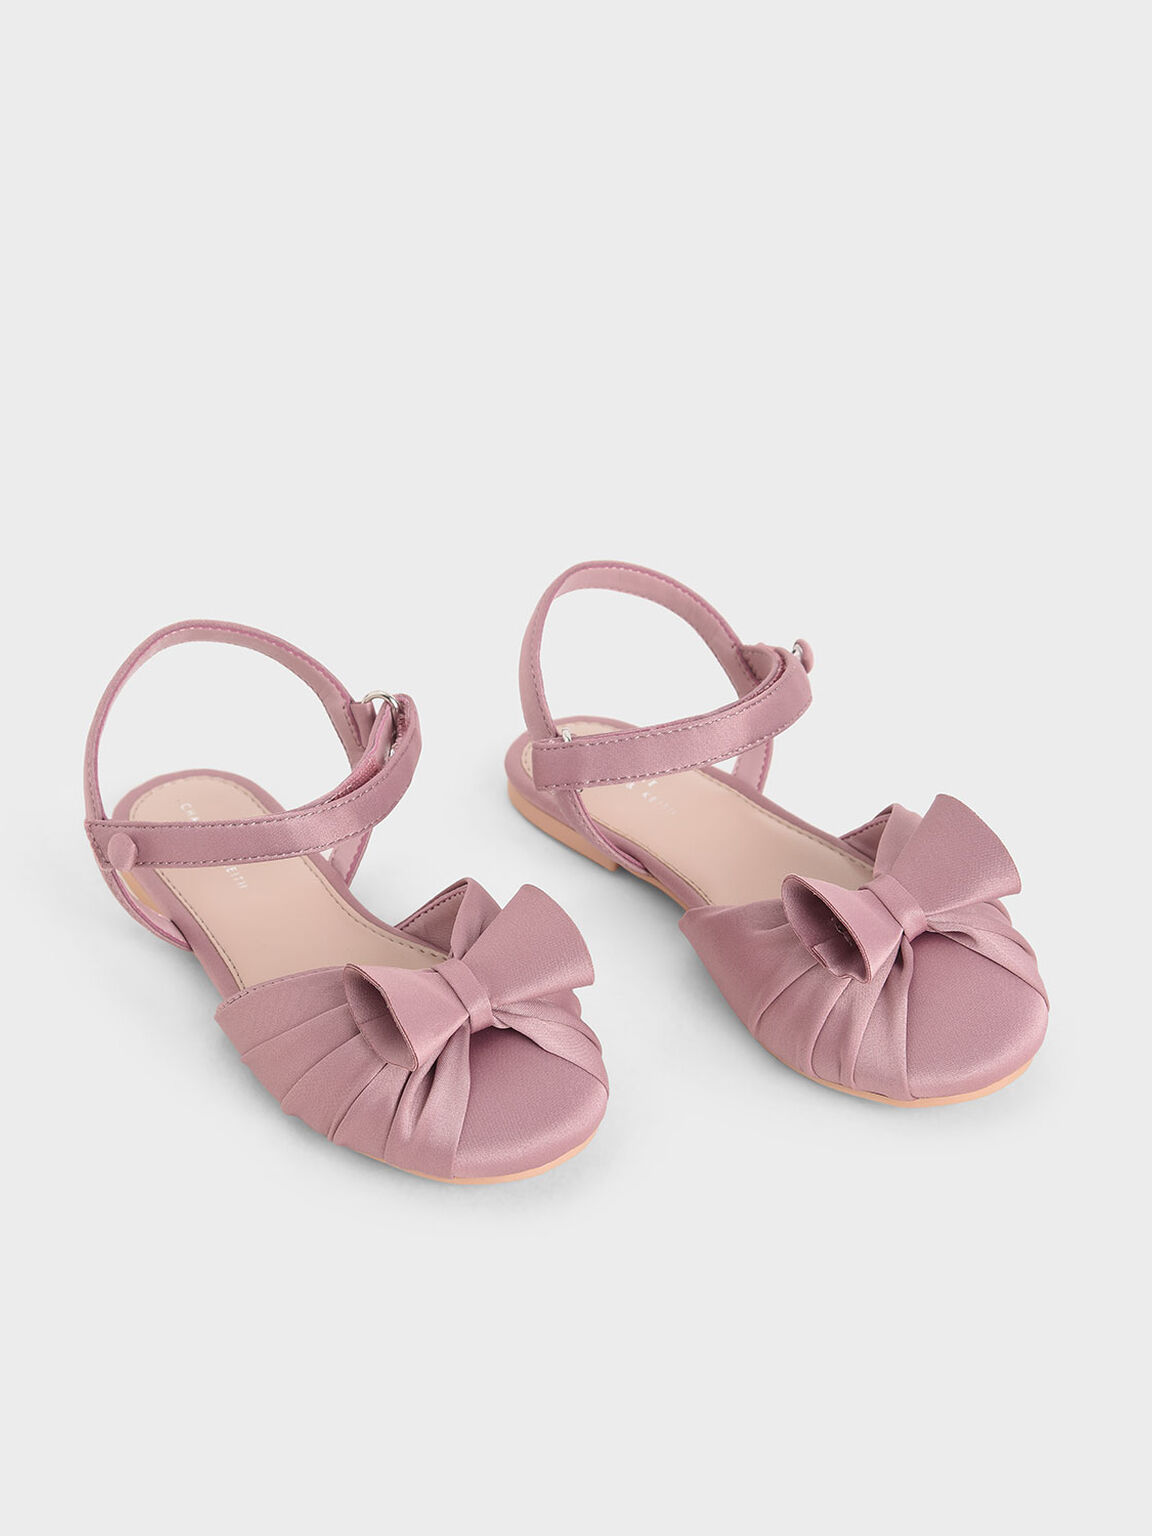 Girls' Satin Flats, Pink, hi-res